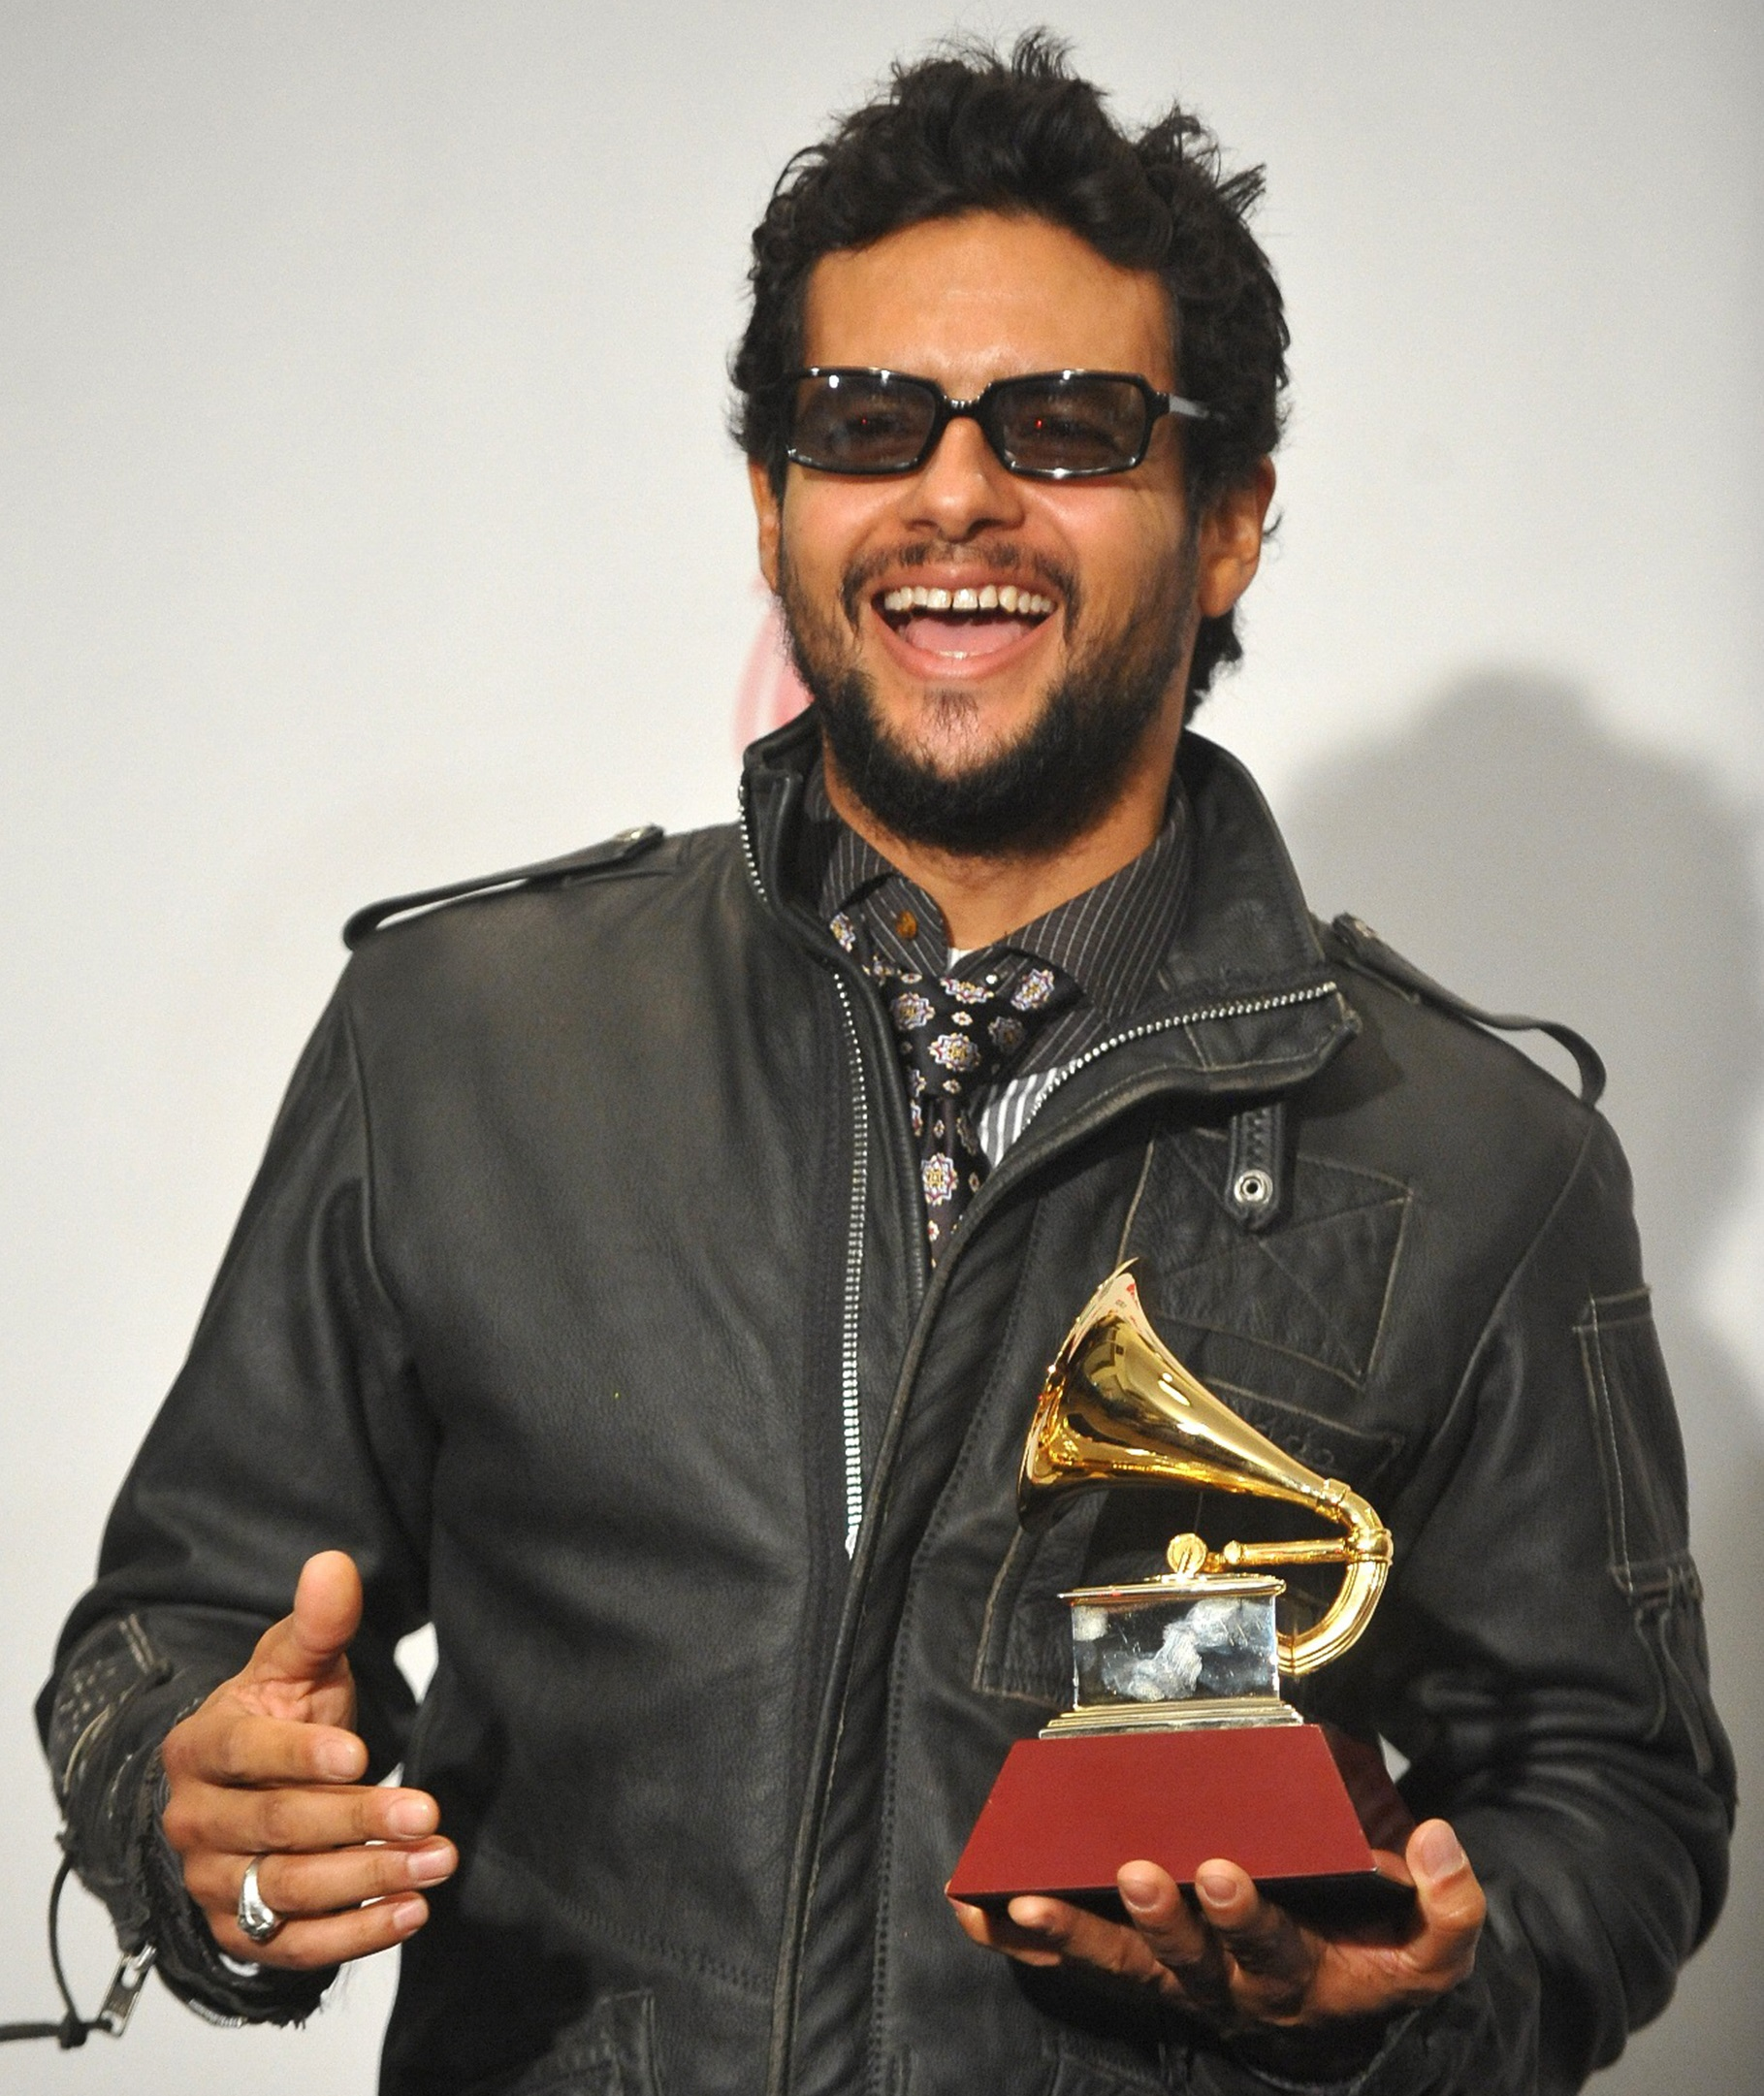 Photo of Draco Rosa en Panamá